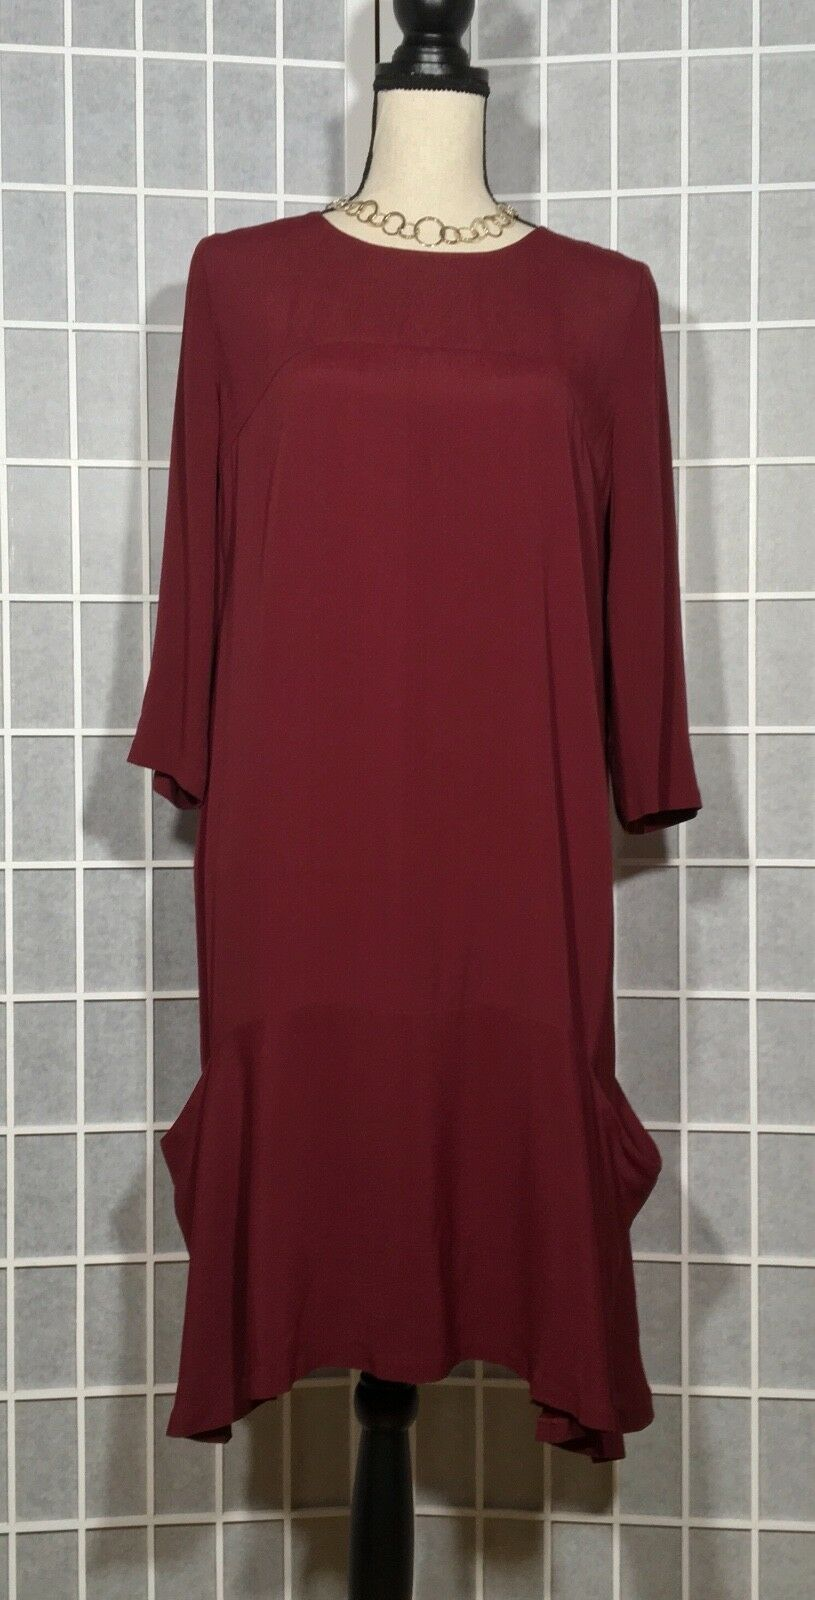 GARNET HILL WOMEN'S DRESS MEDIUM HIGH LOW HEM 1 2 SLEEVES BURGUNDY ANY OCCASION